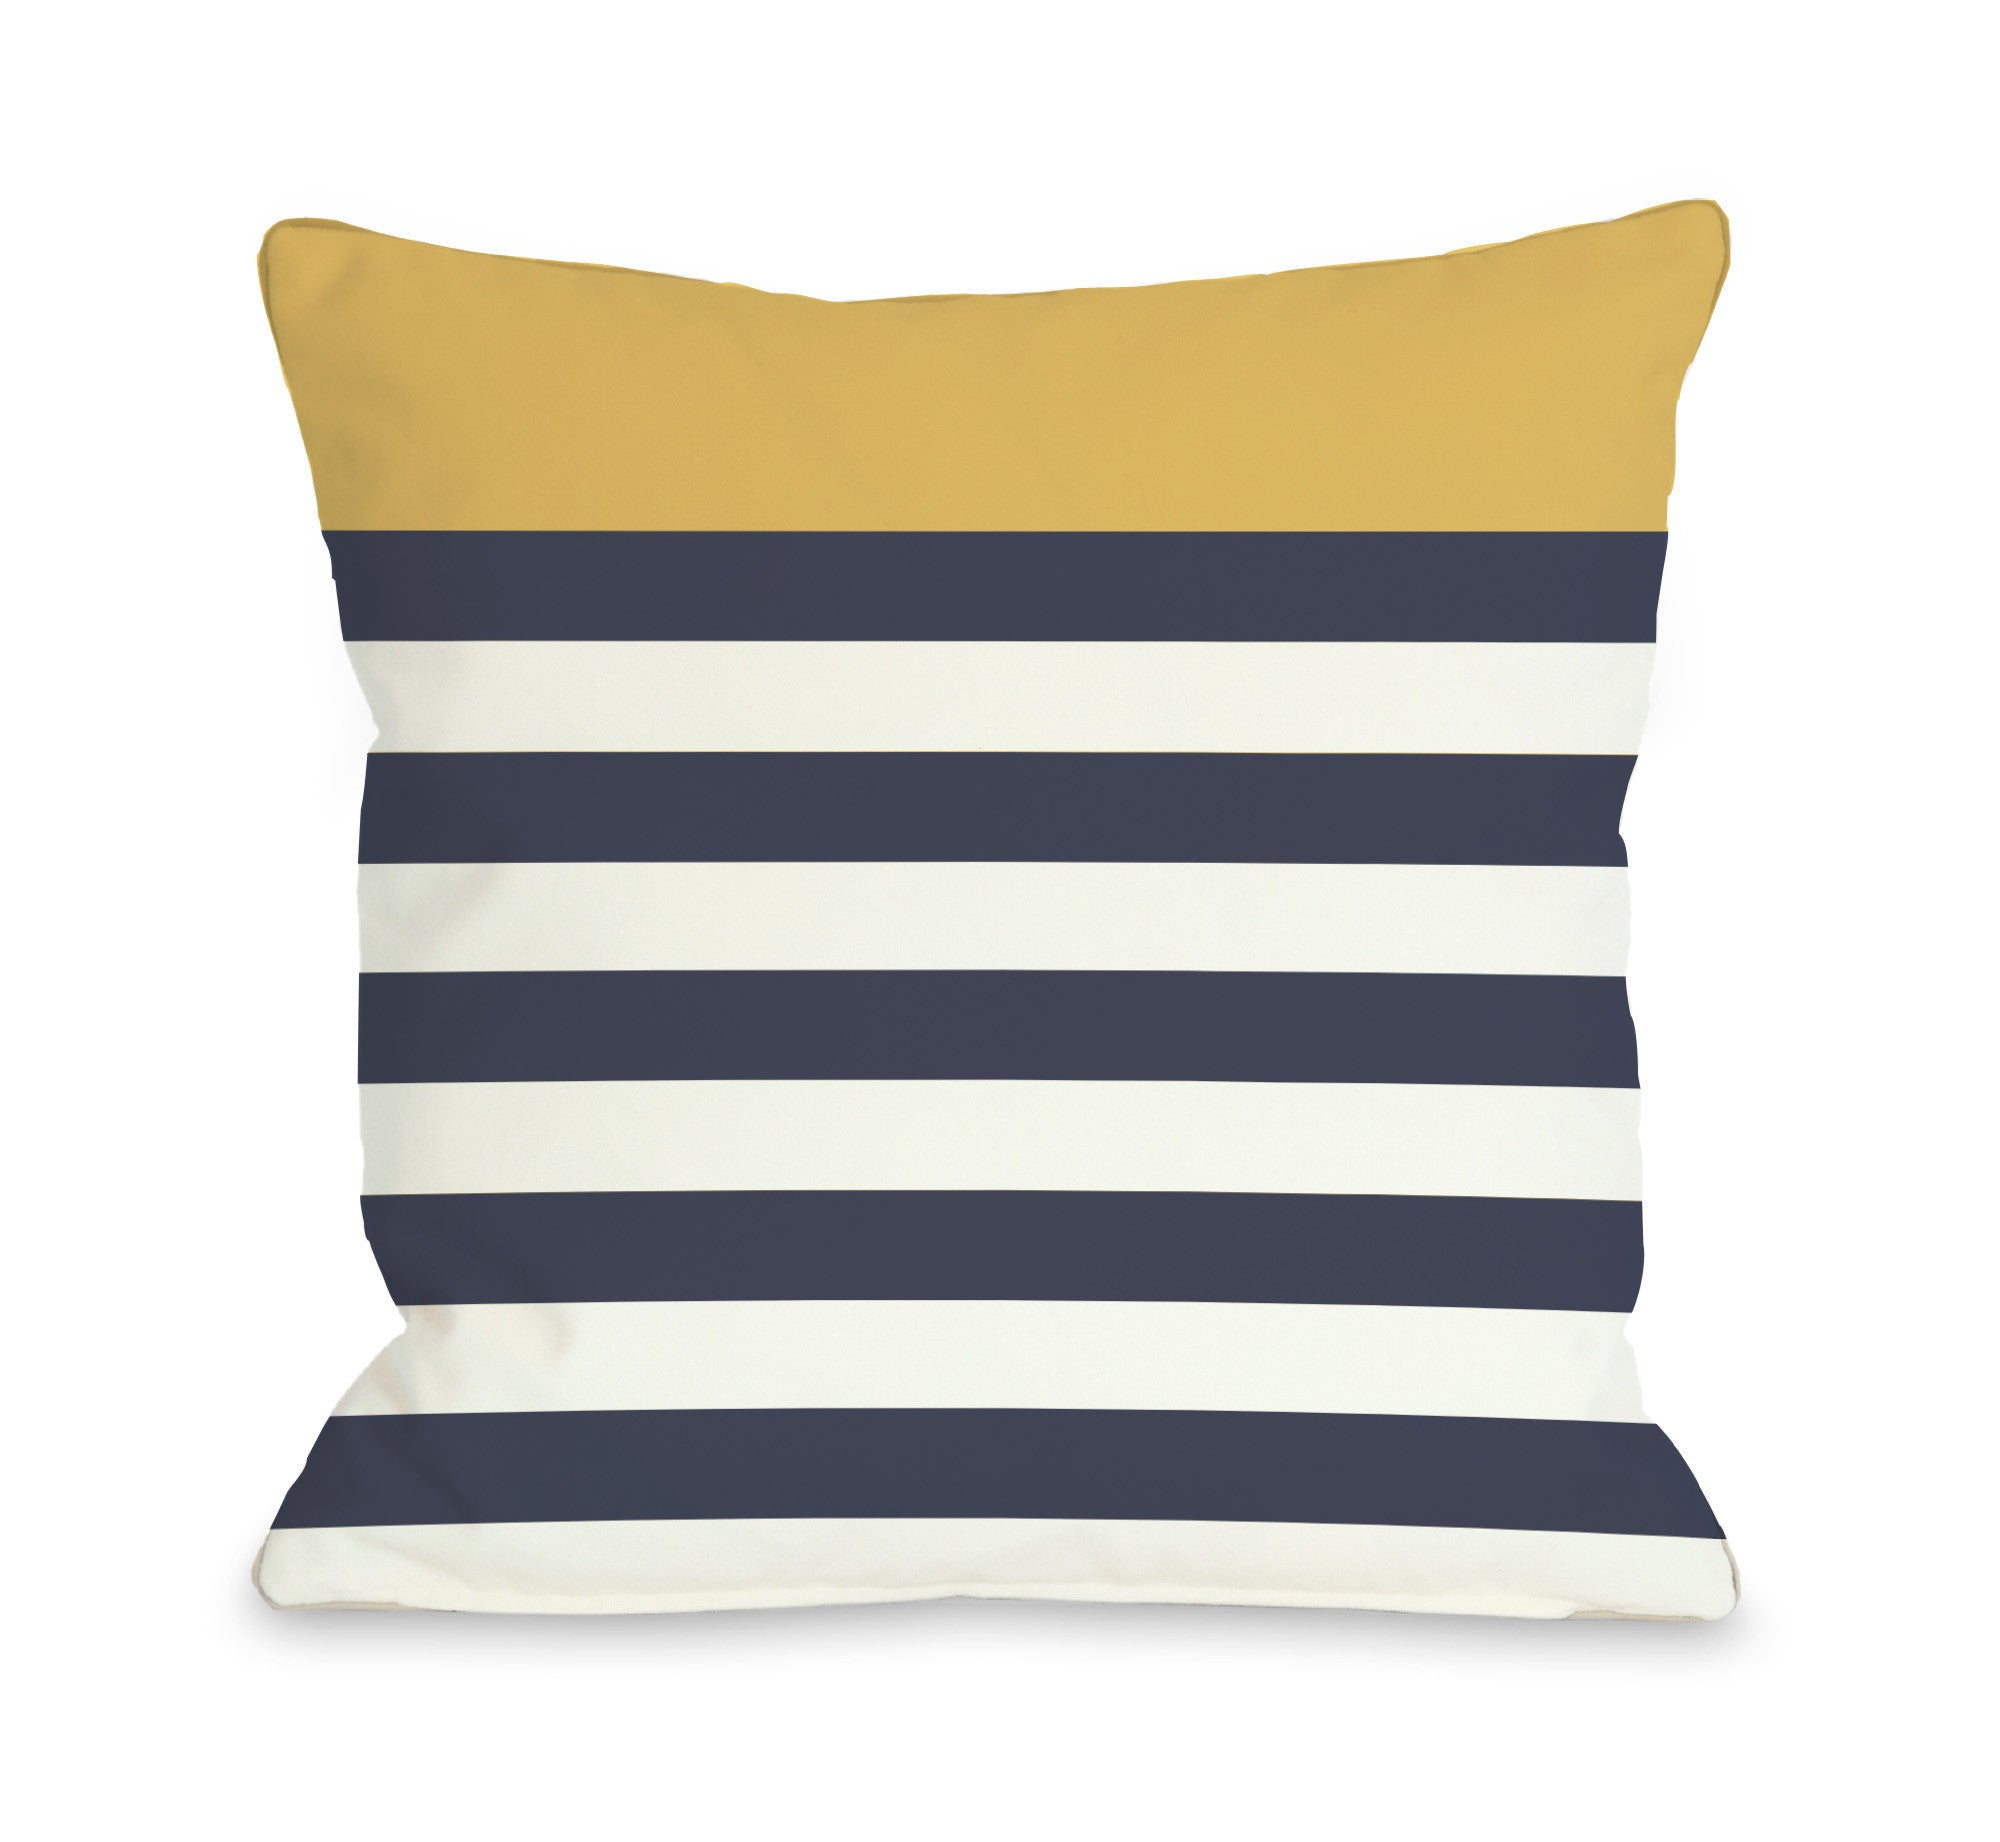 Nautical Stripes - Mimosa Outdoor Throw Pillow by OBC